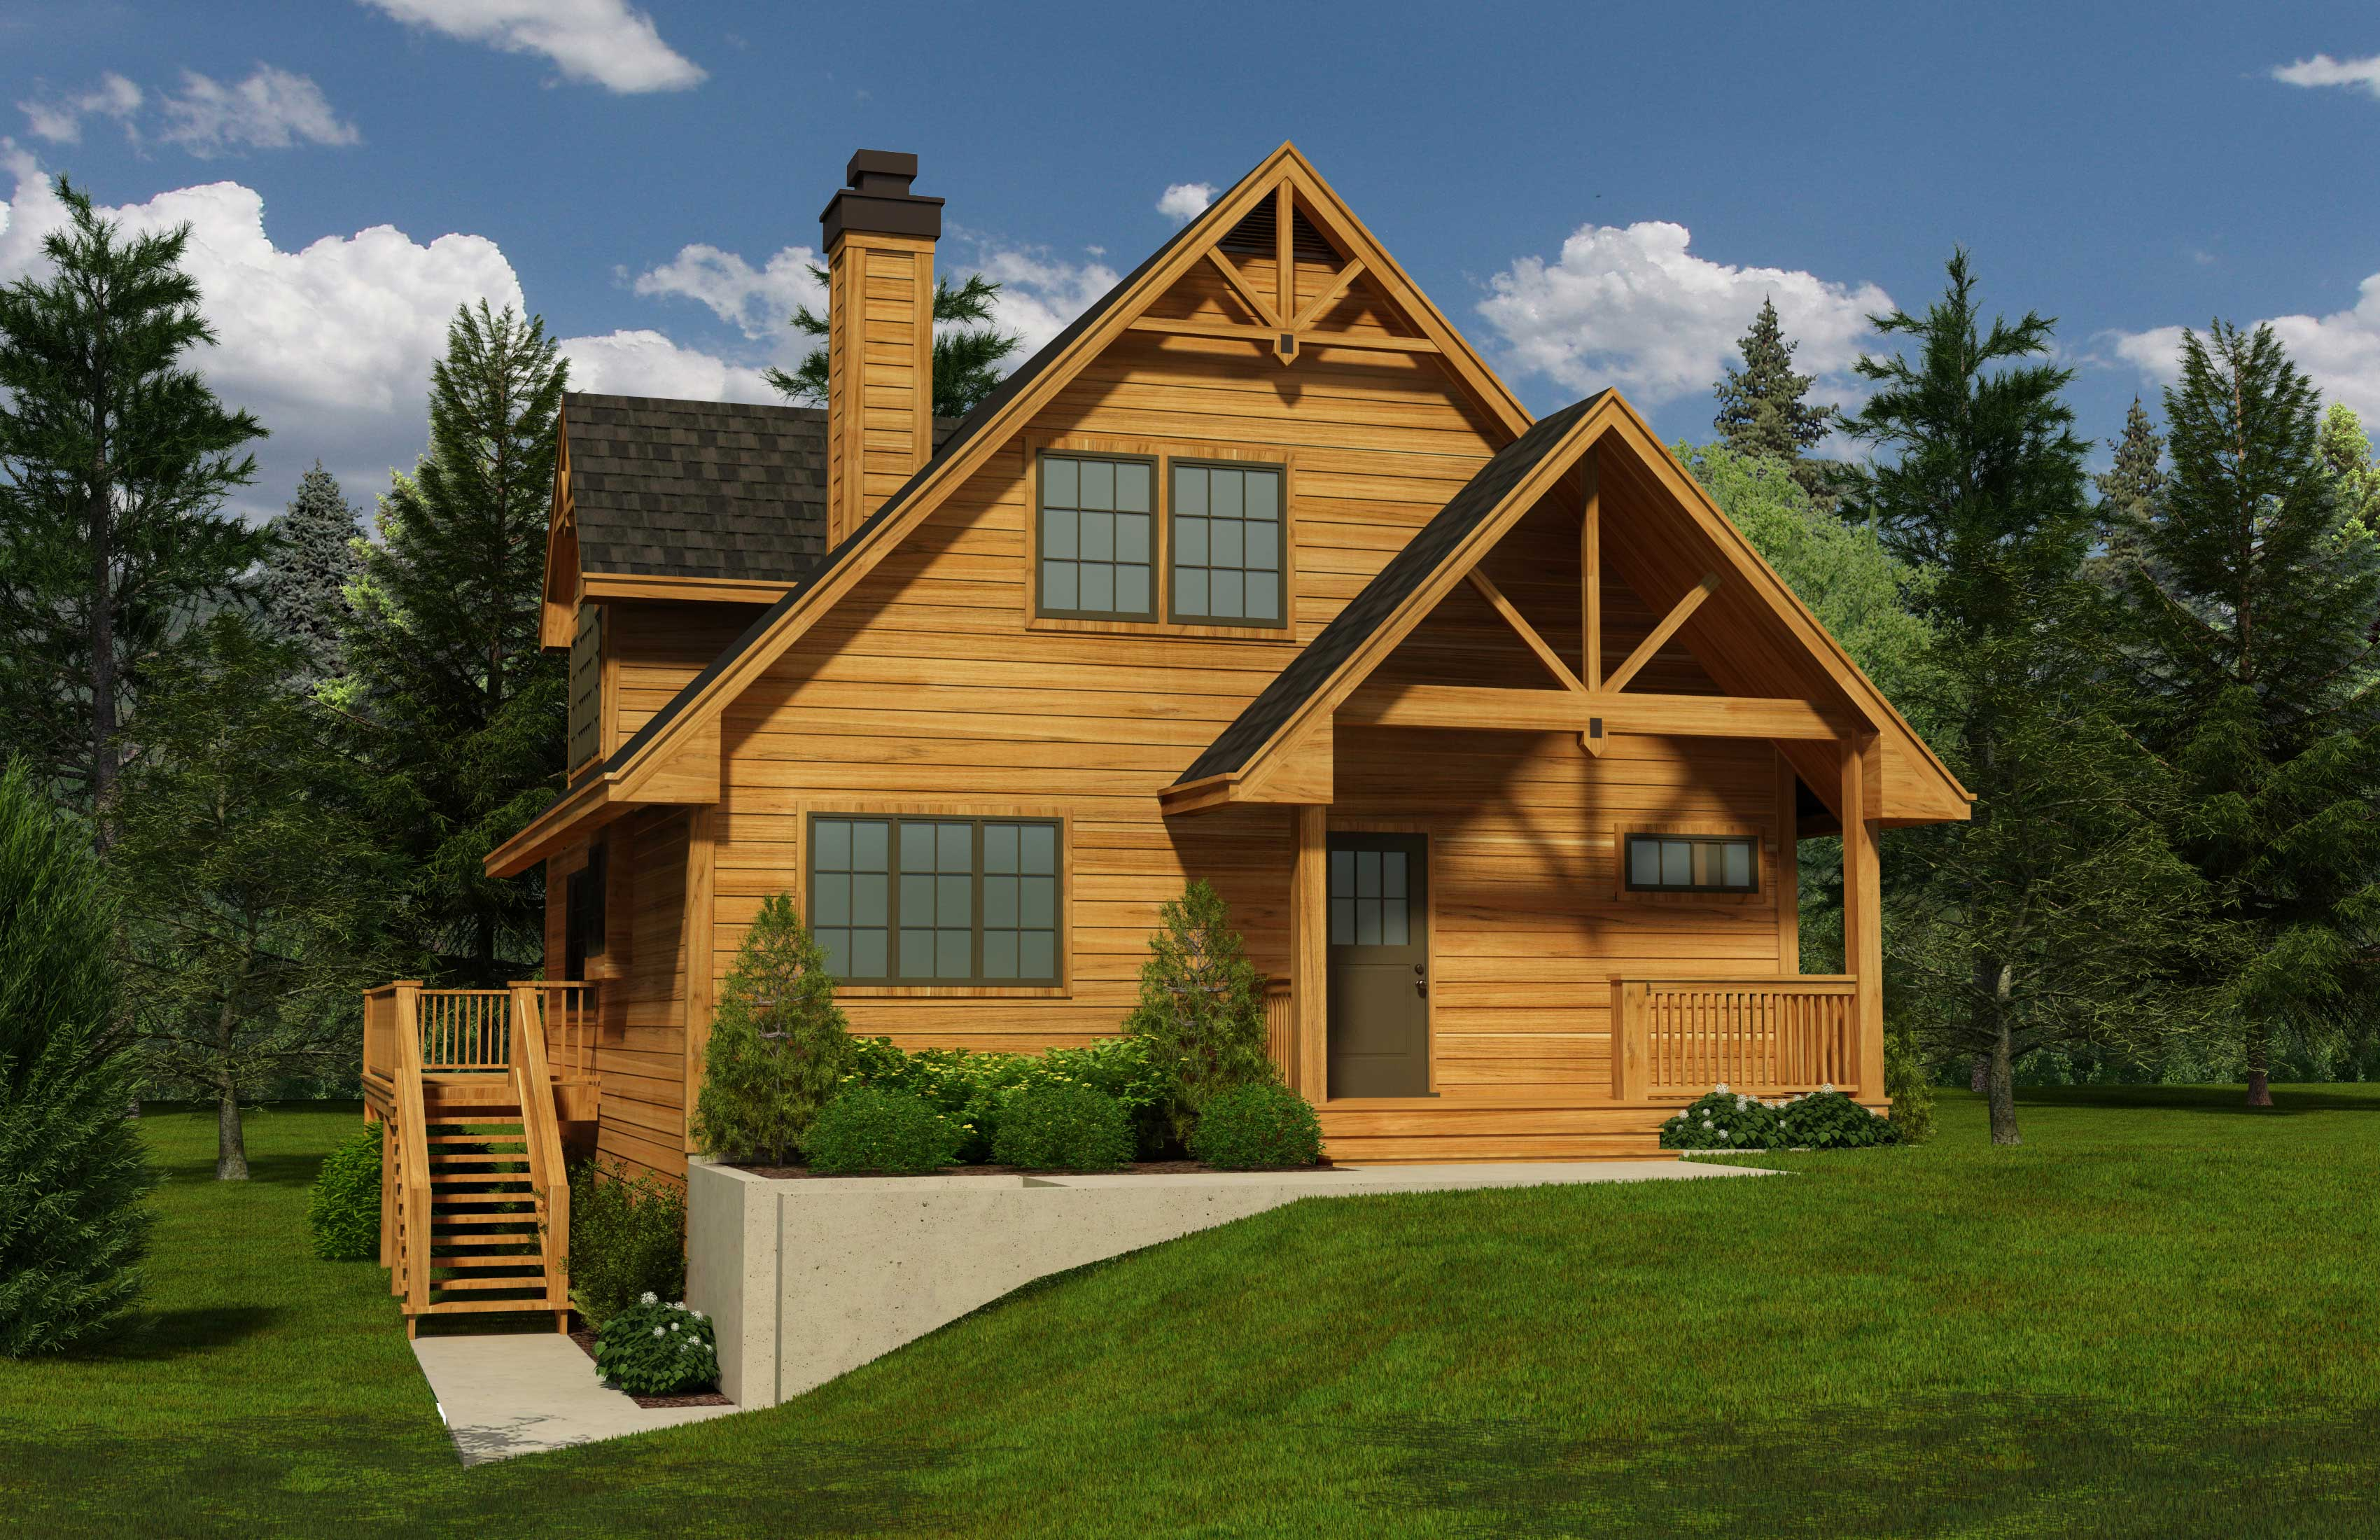 floor plans for small cabins 3 bedrm 1741 sq ft craftsman house plan 160 1018 3003